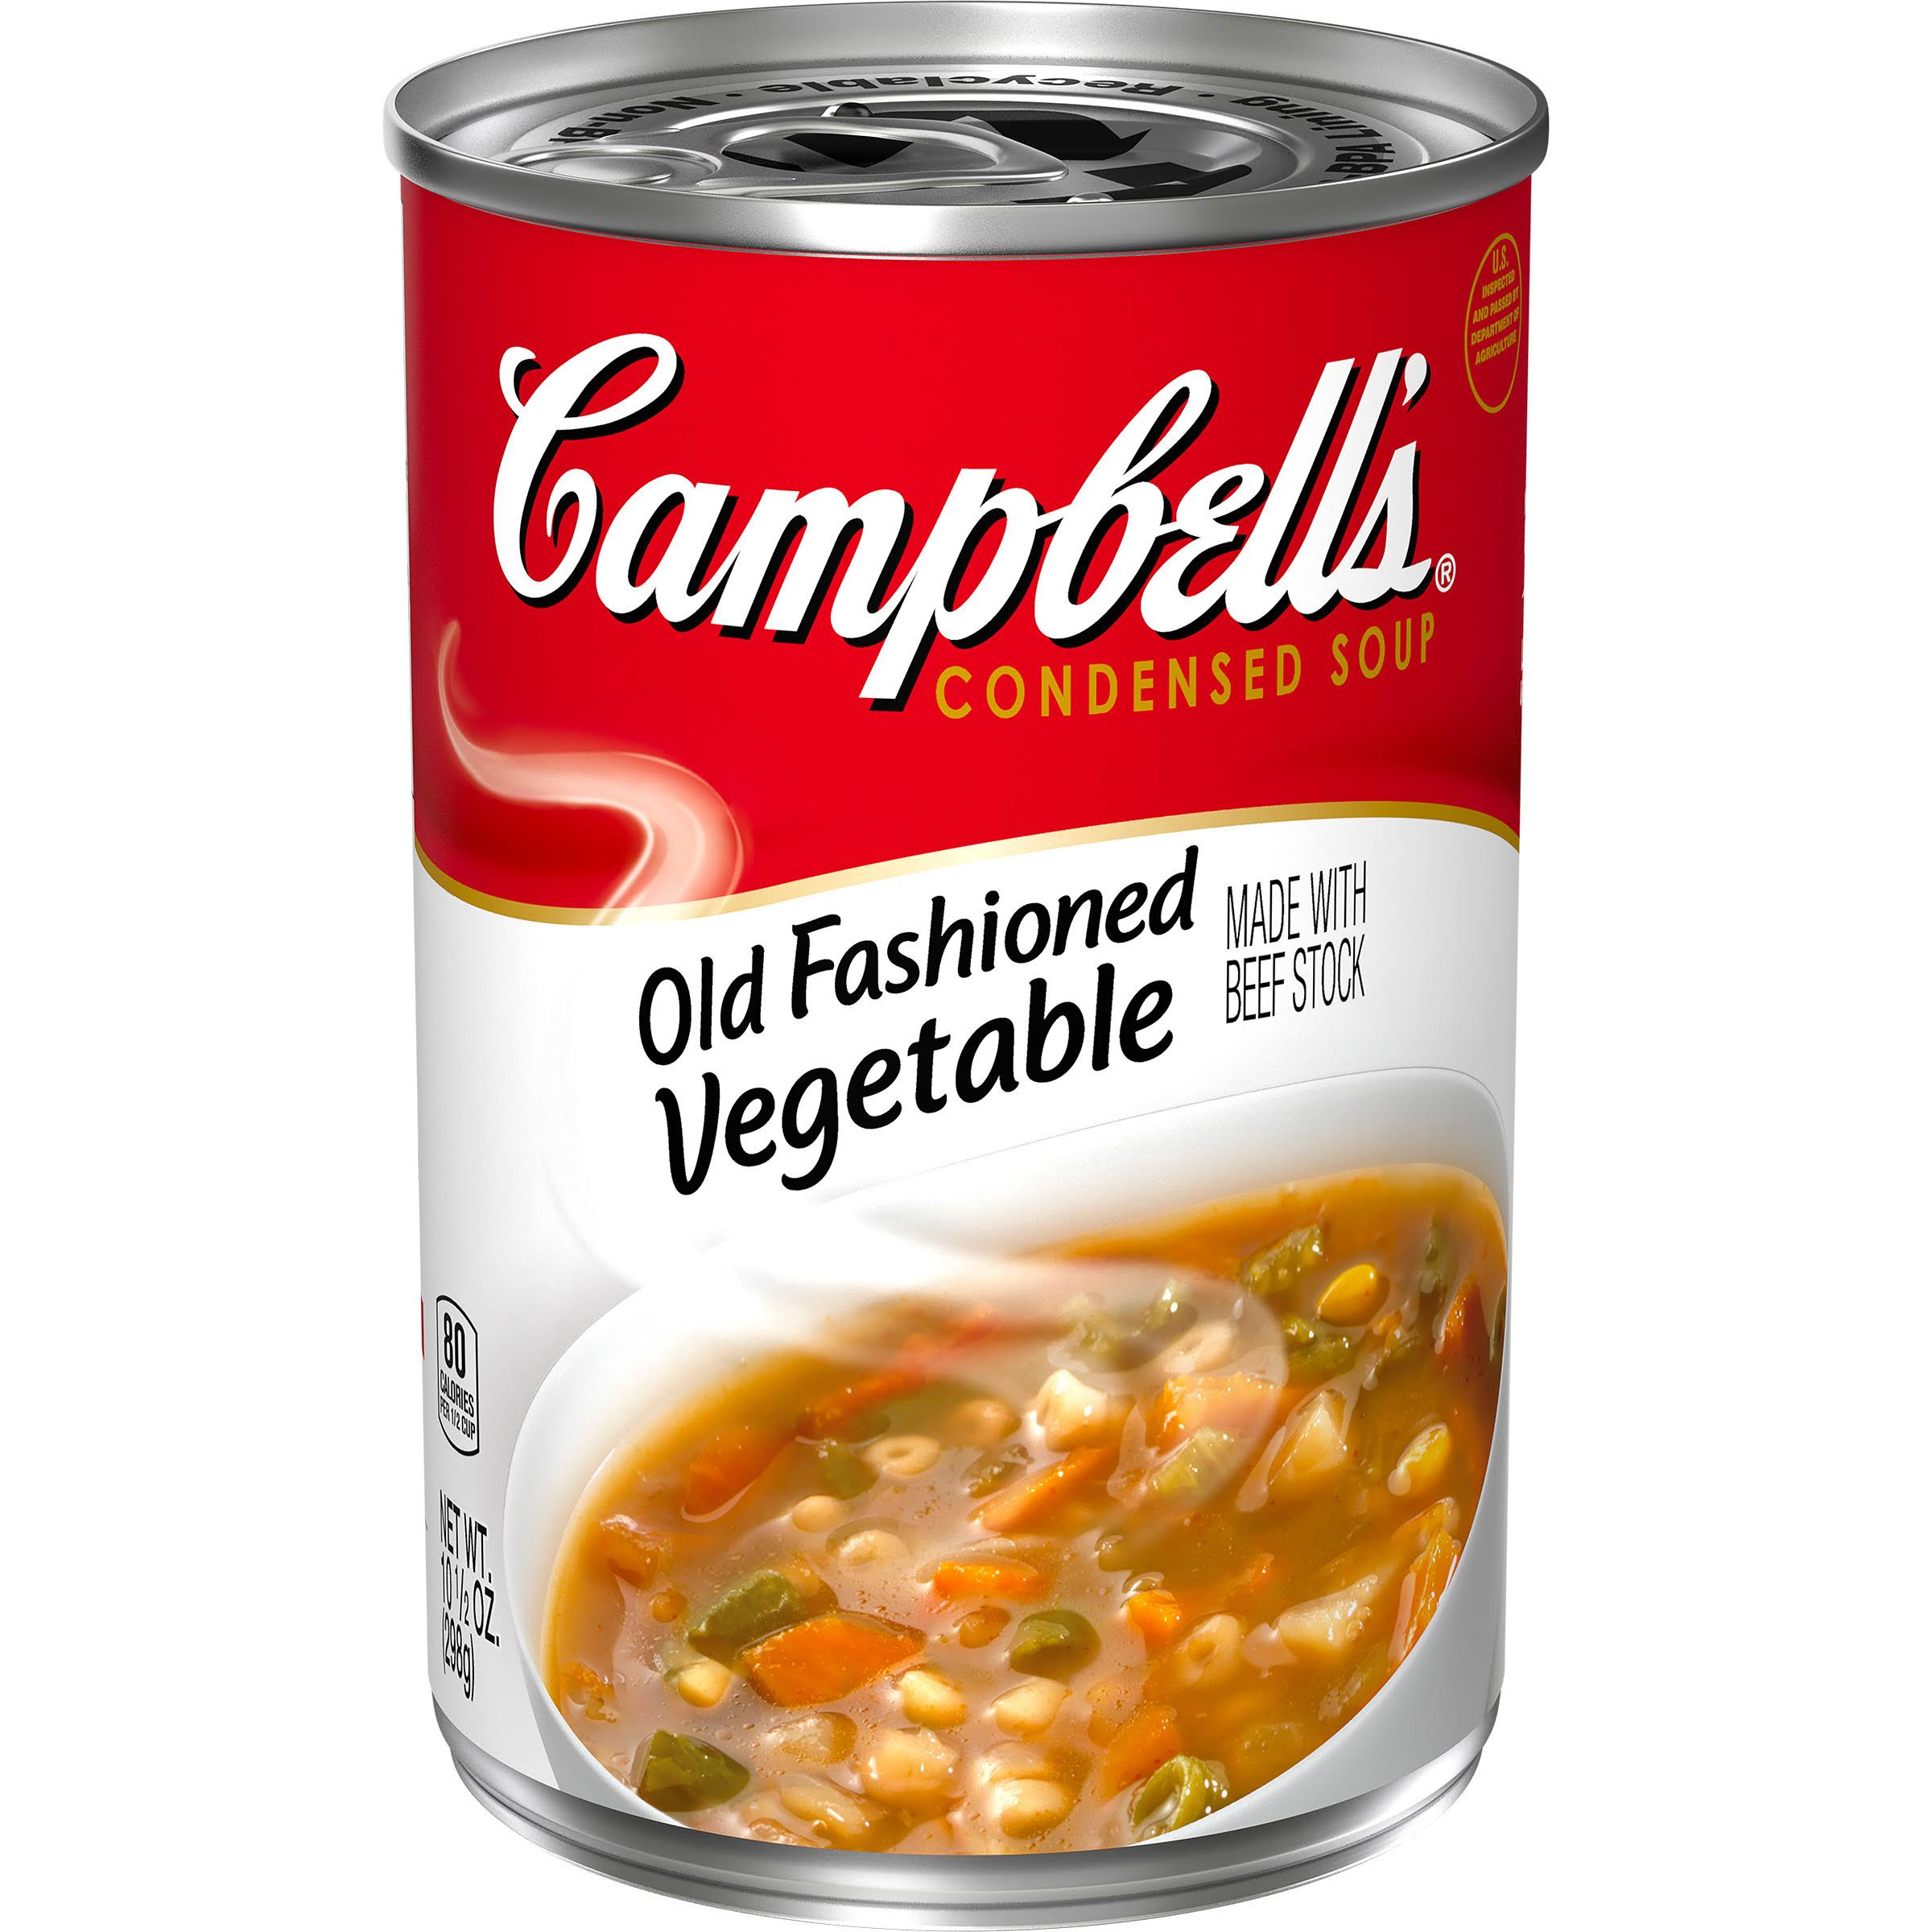 Campbell's Old Fashioned Vegetable Condensed Soup - 10.5oz